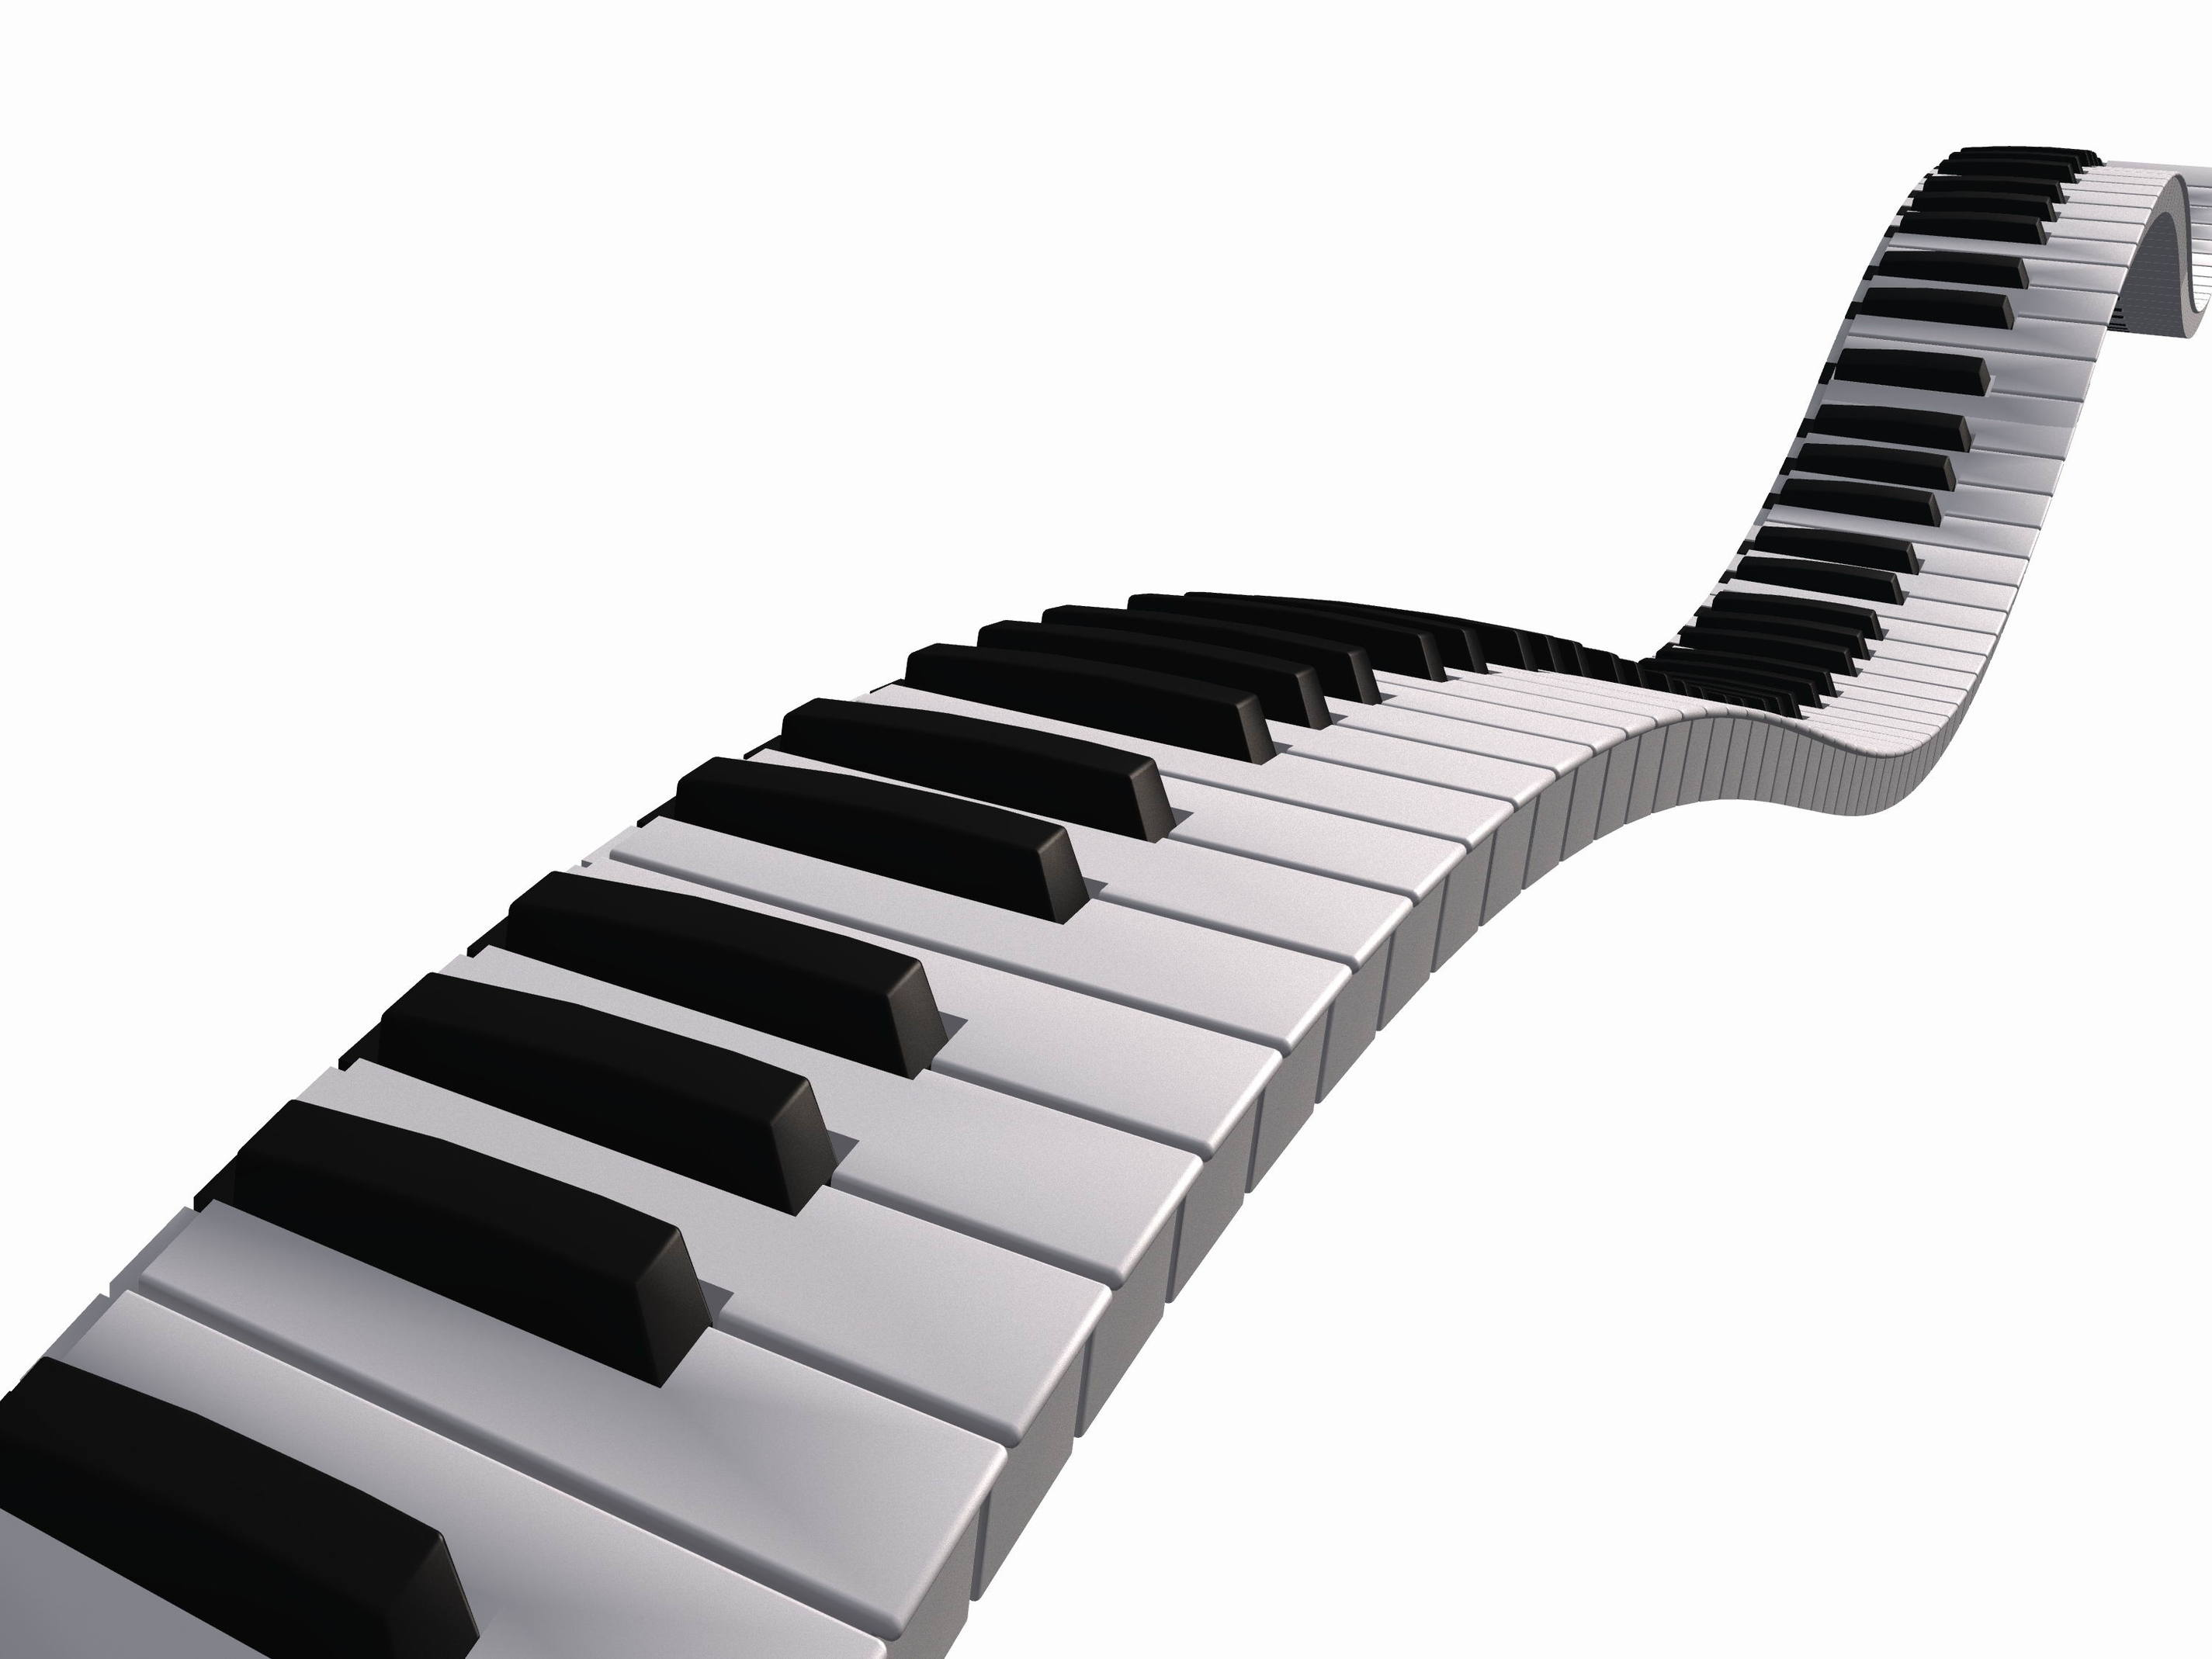 Piano Keys Clipart - Blogsbeta